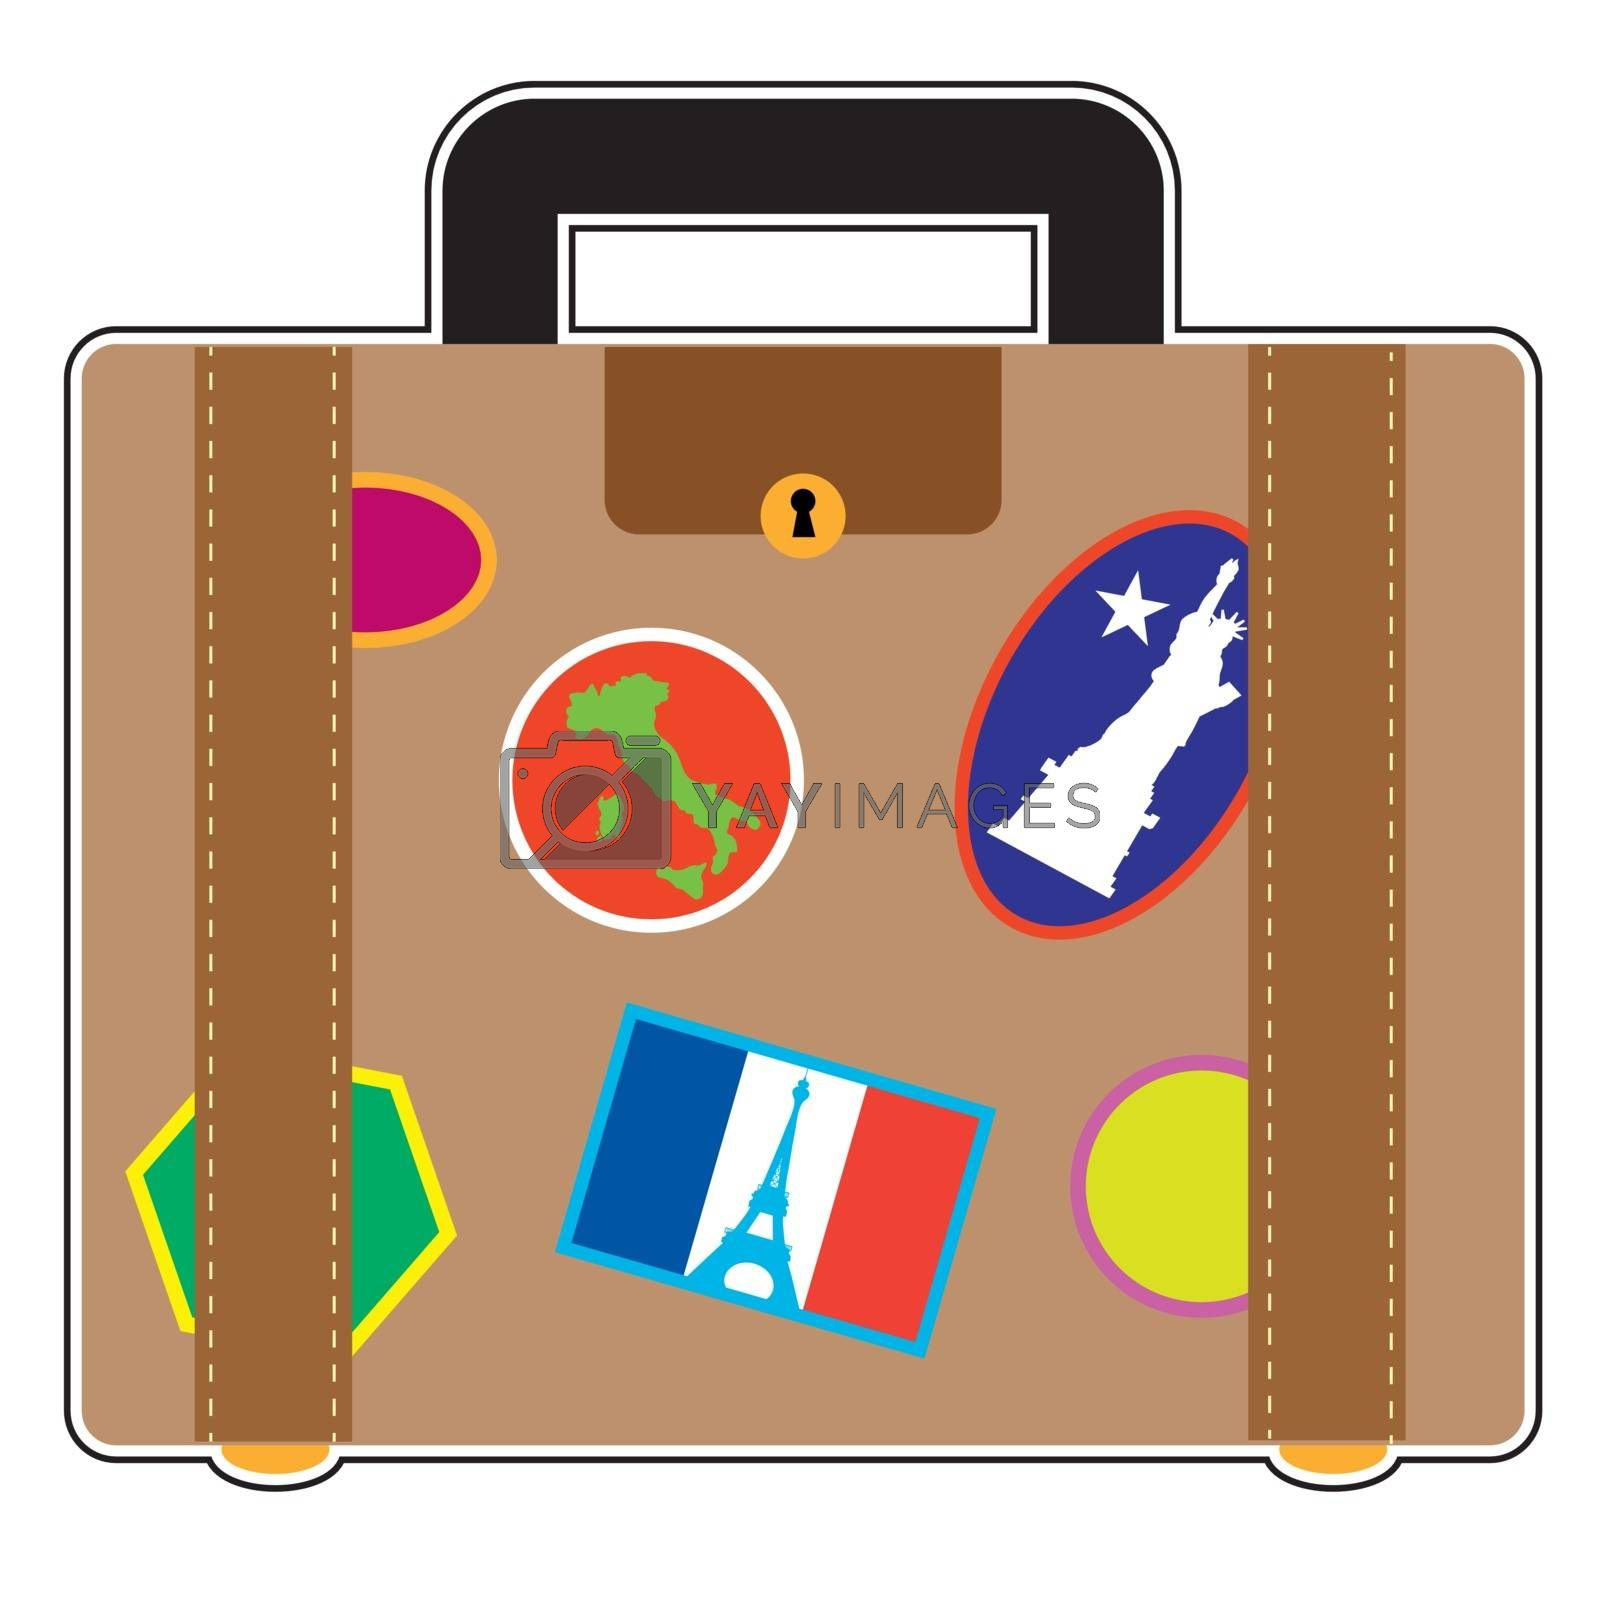 A suitcase covered in stickers from France, Italy and the United States